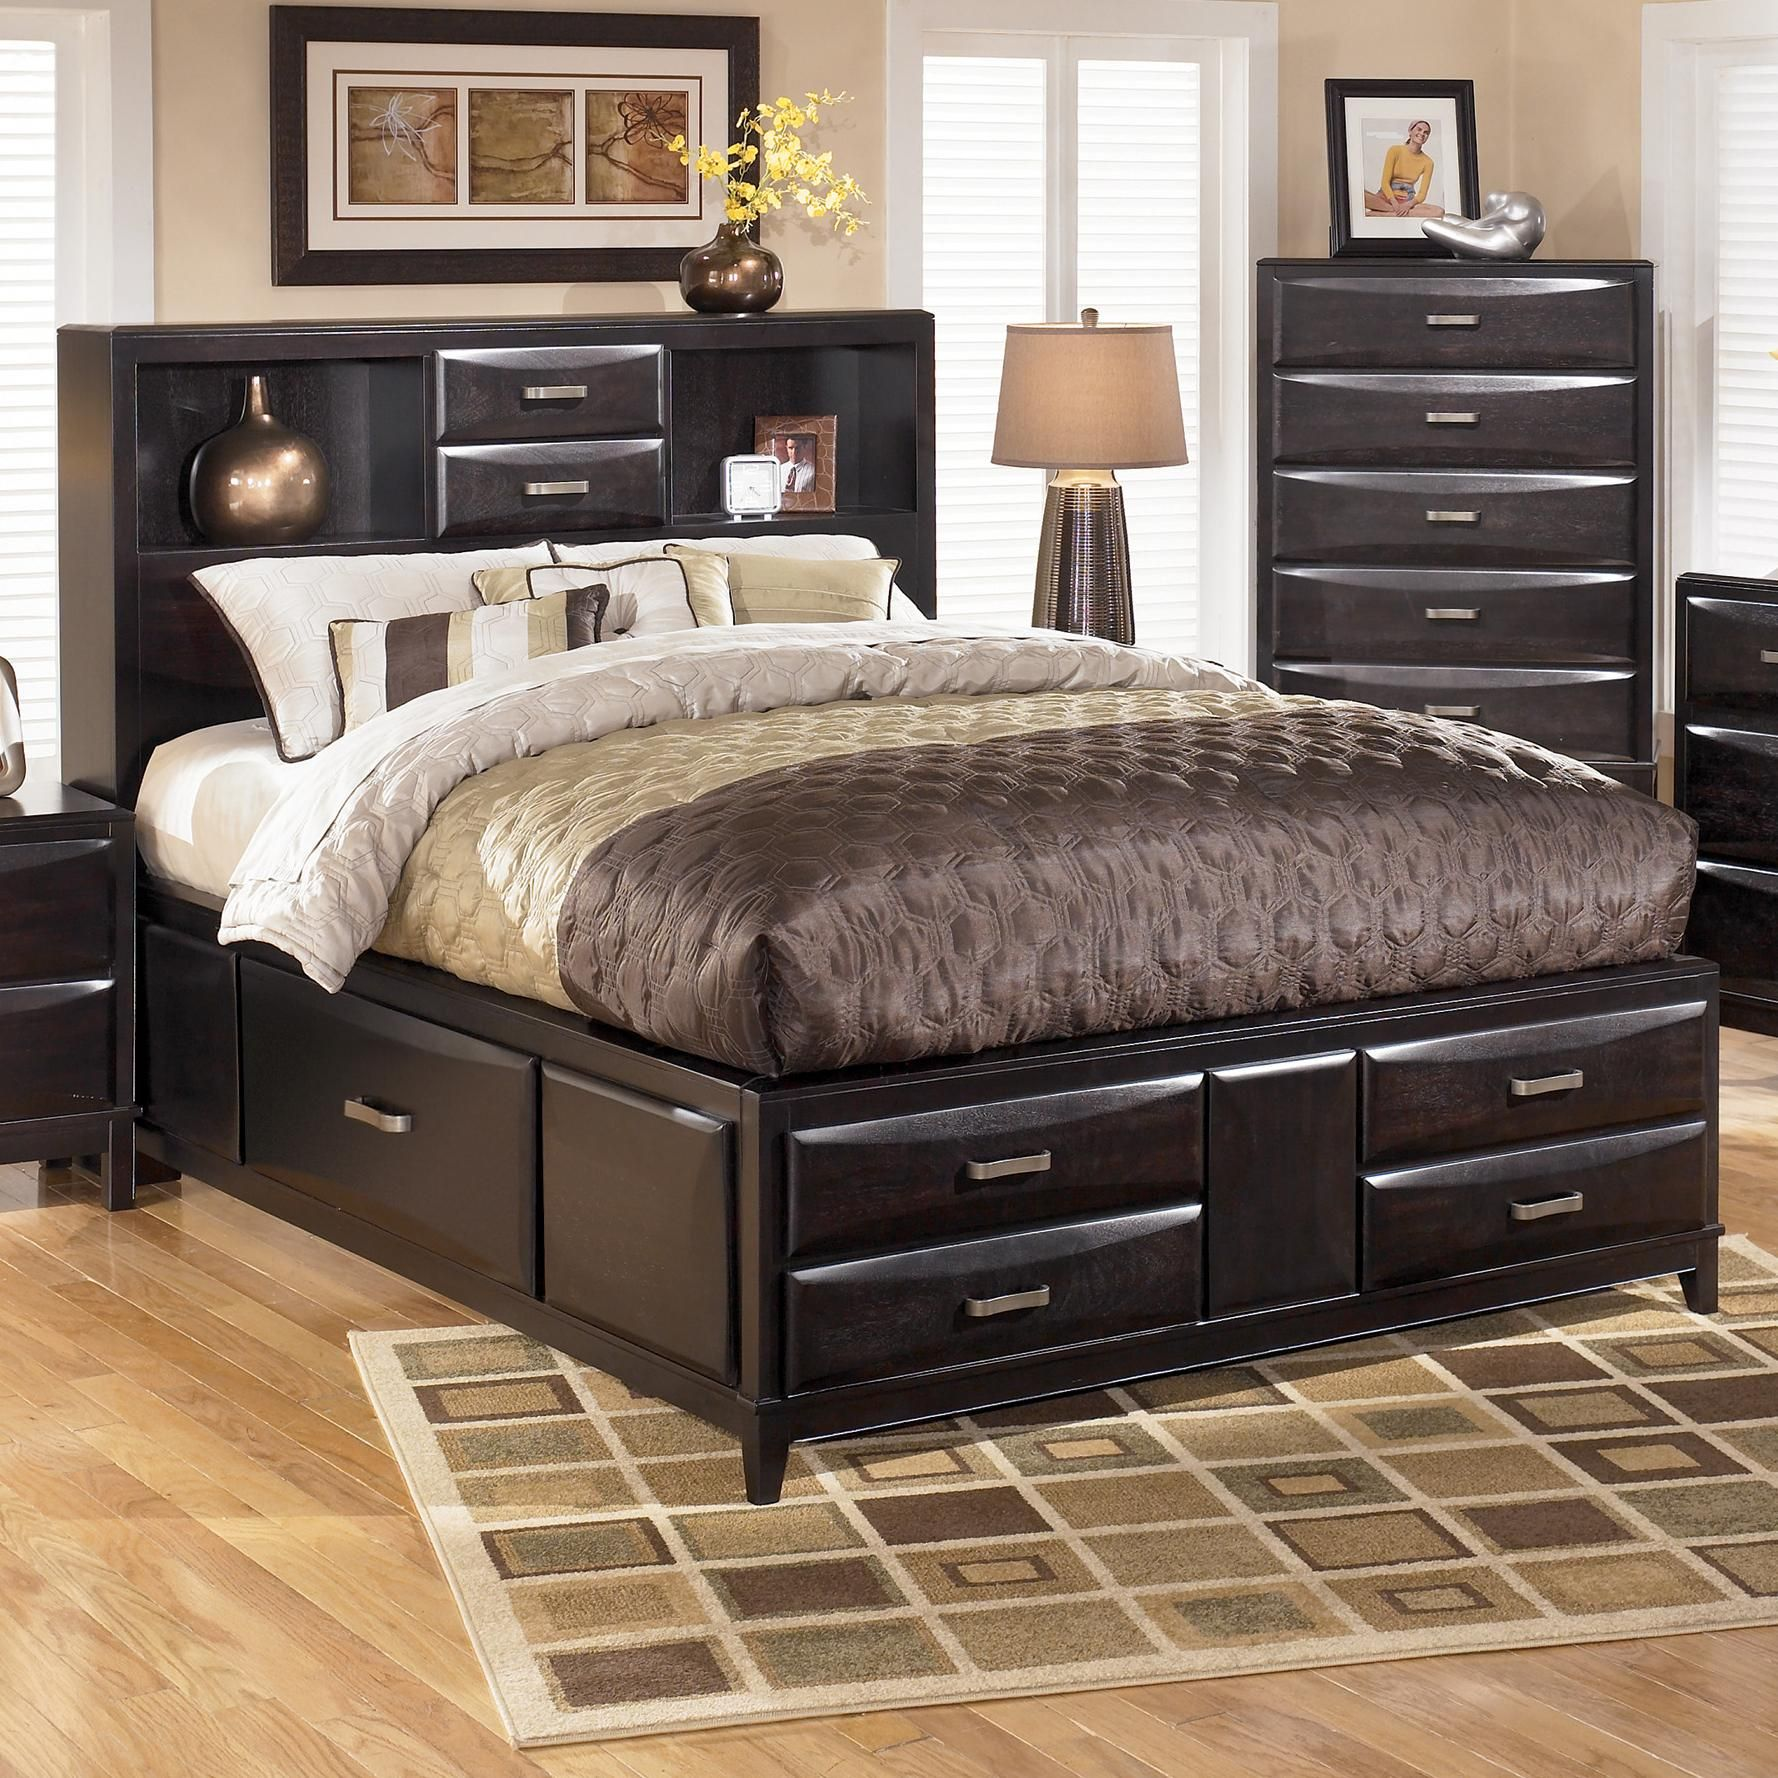 Kira Queen Storage Bed By Ashley Furniture   L Fish   Captainu0027s Bed  Indianapolis, Greenwood